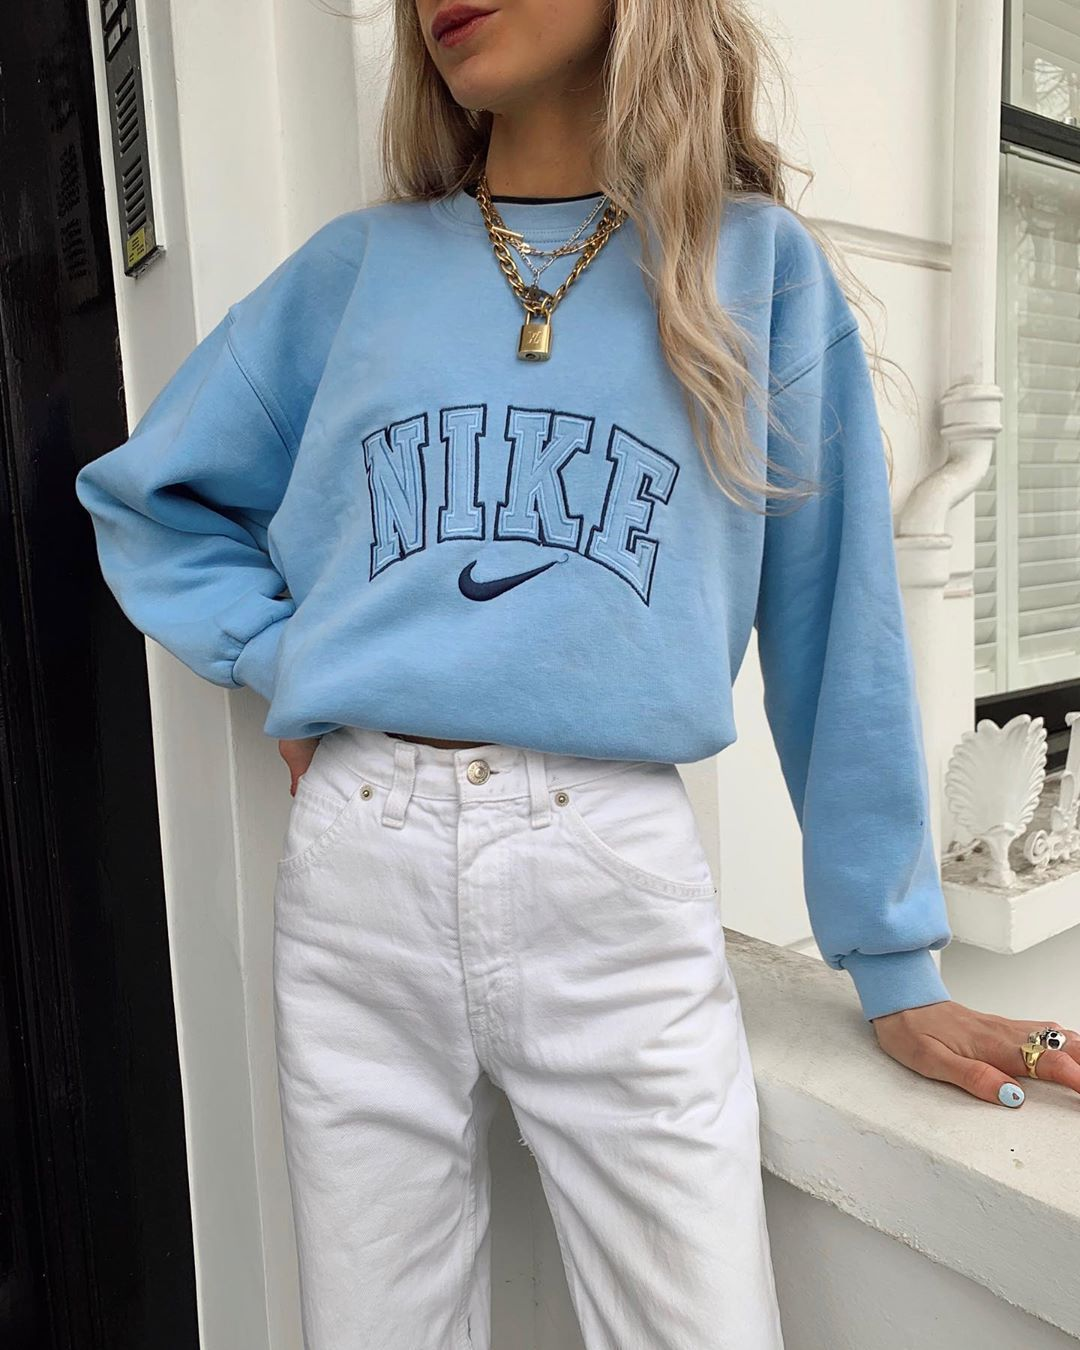 Babyblue Vintage Nike Sweater Nike Sweats Outfit Sweats Outfit Scene Outfits [ 1350 x 1080 Pixel ]